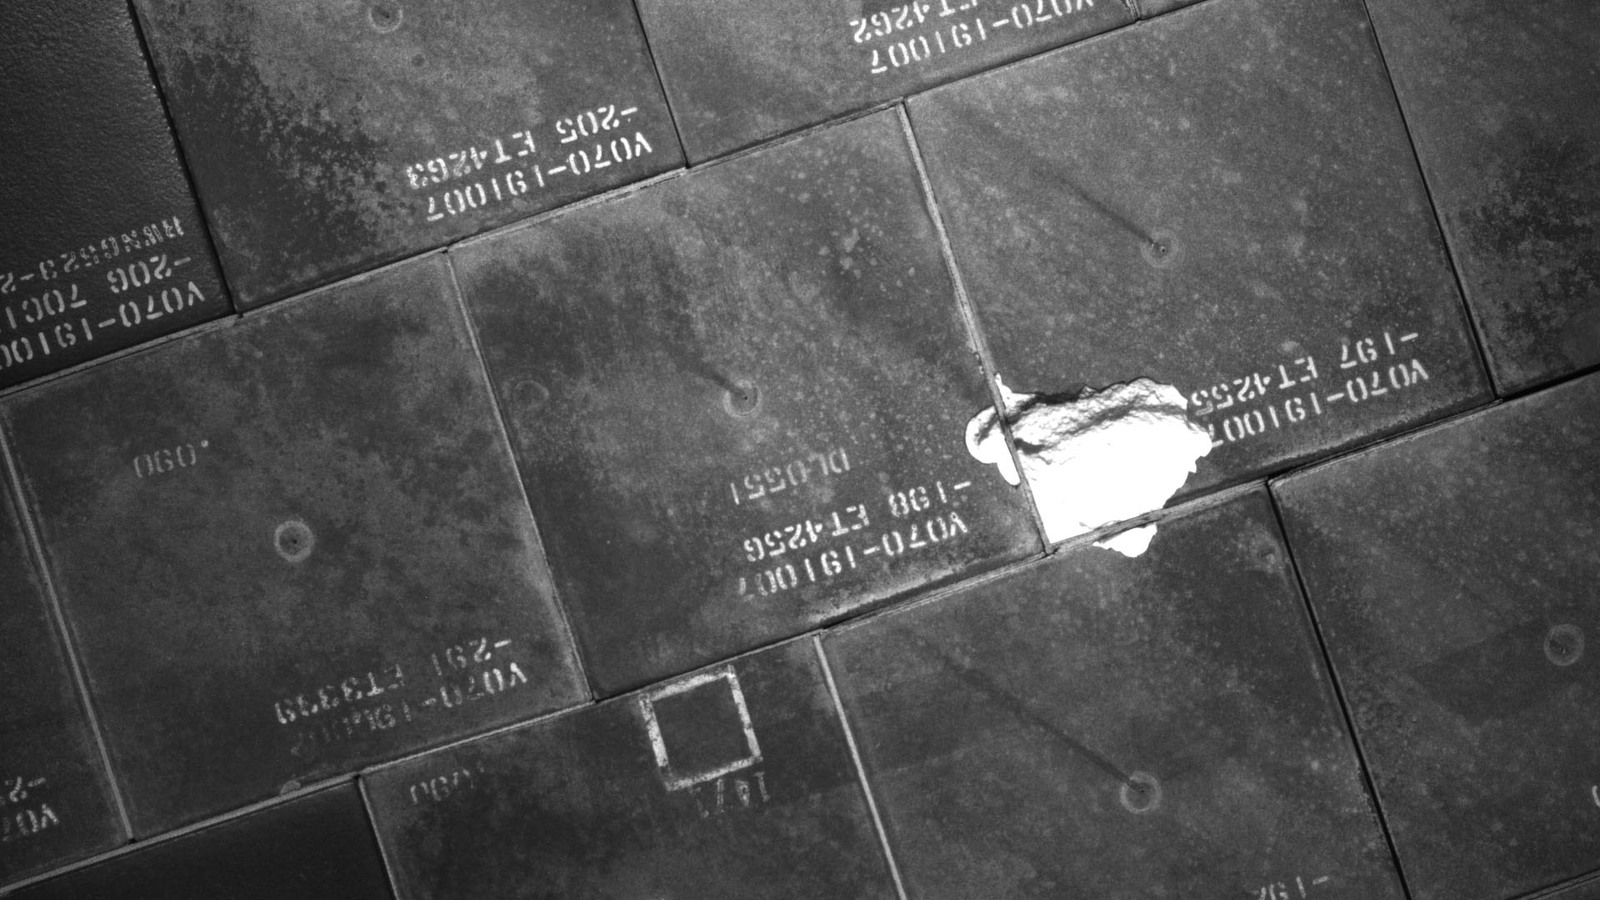 S134E007986 - STS-134 - STS-134 IDC Focused Inspection of TPS Tiles